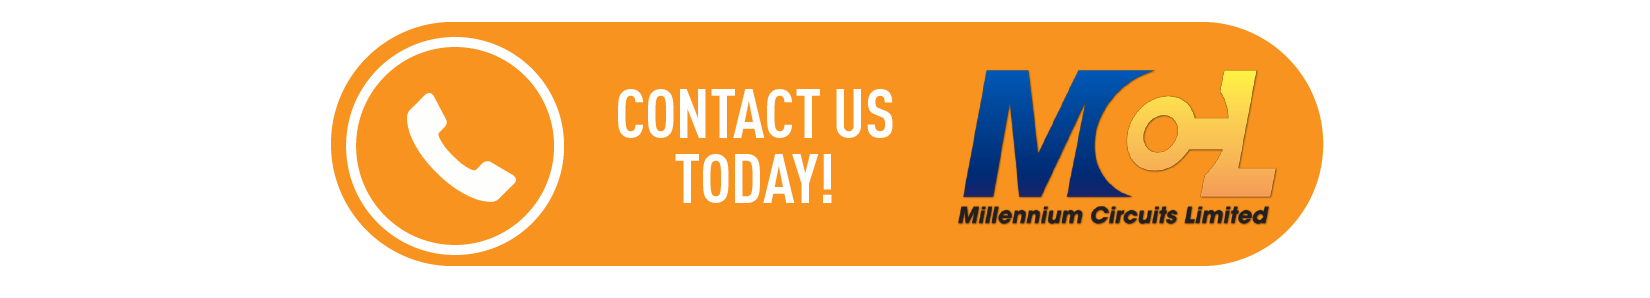 Contact MCL today